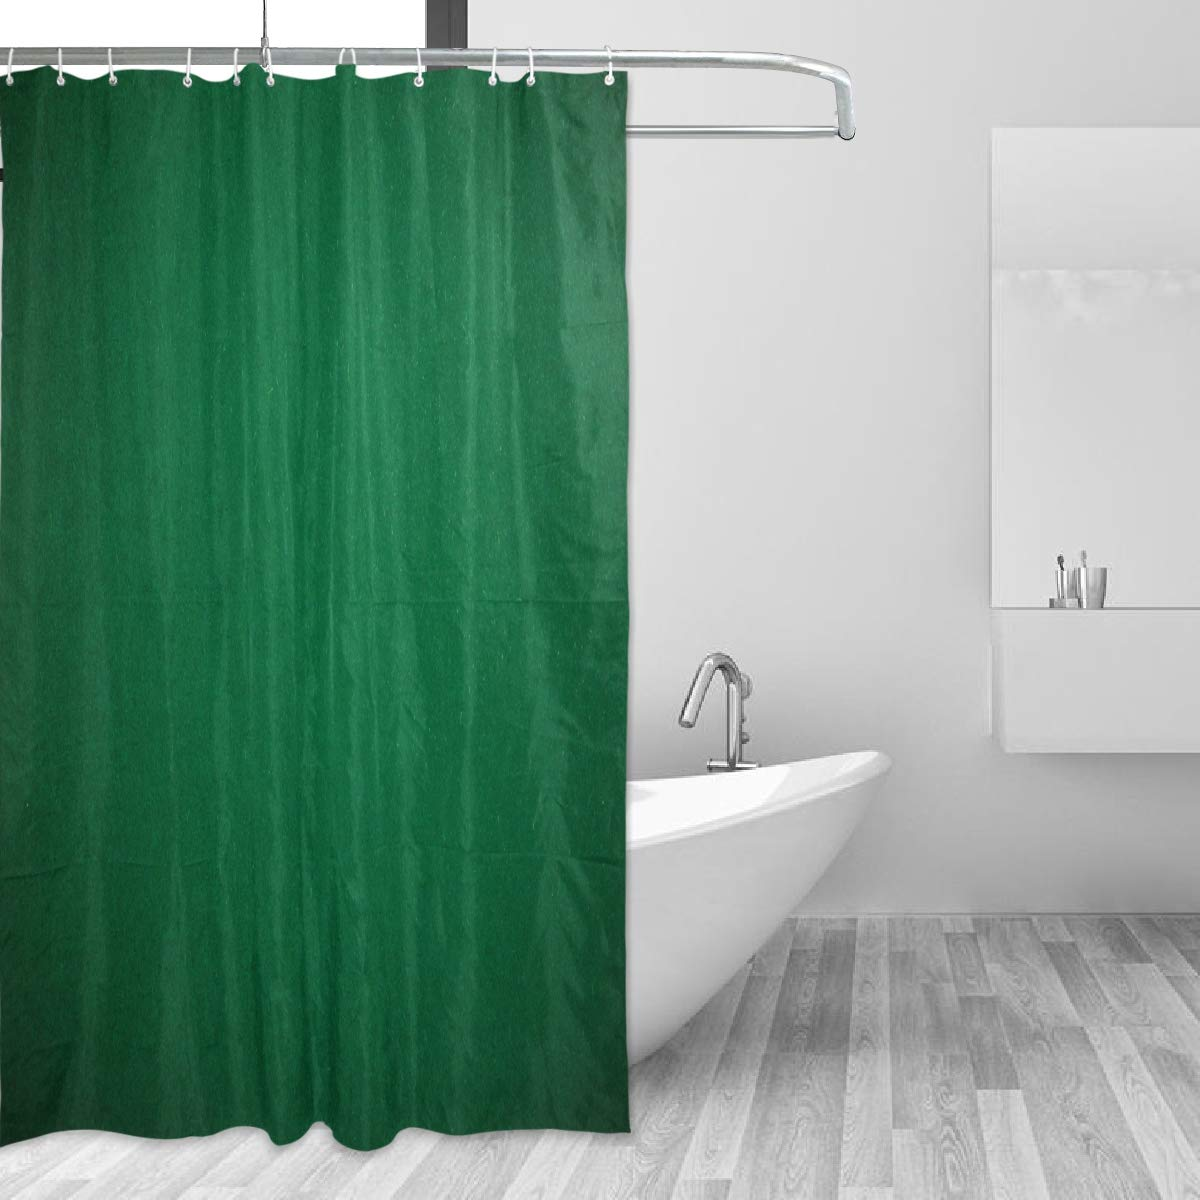 Hunter Green Shower CurtainDigitally Created Plain Surface Vegas Color Holdem Artful Picture PrintFabric Bathroom Decor Set With Hooks60 By 72 Inches